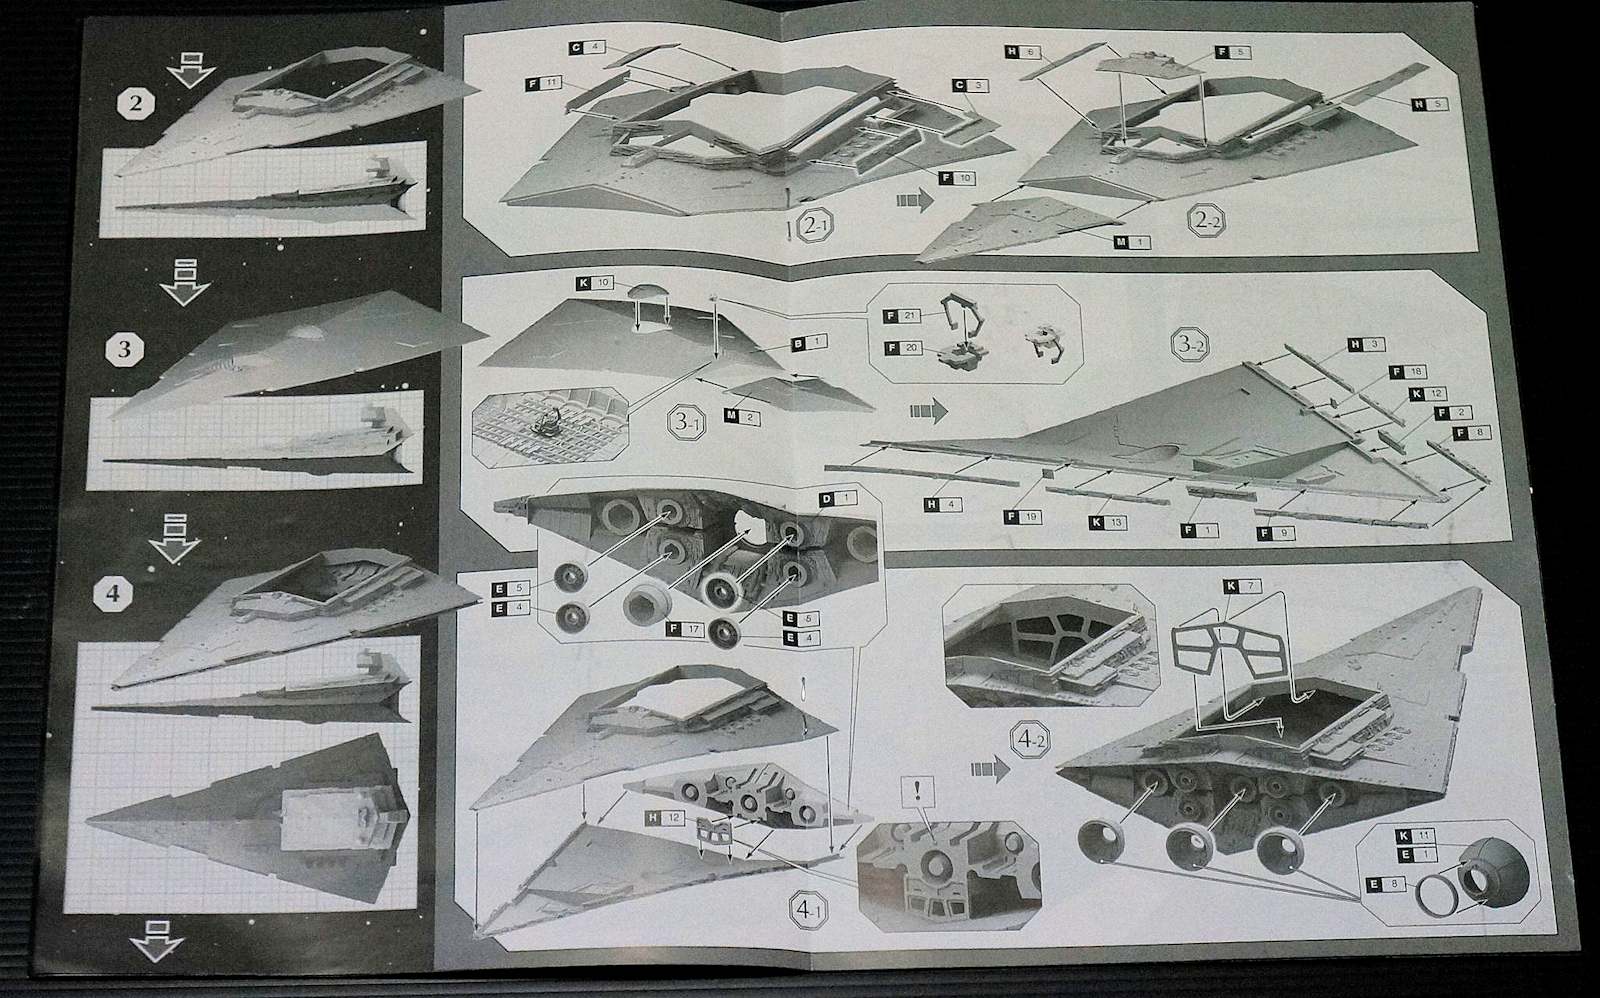 zvezda star destroyer instructions